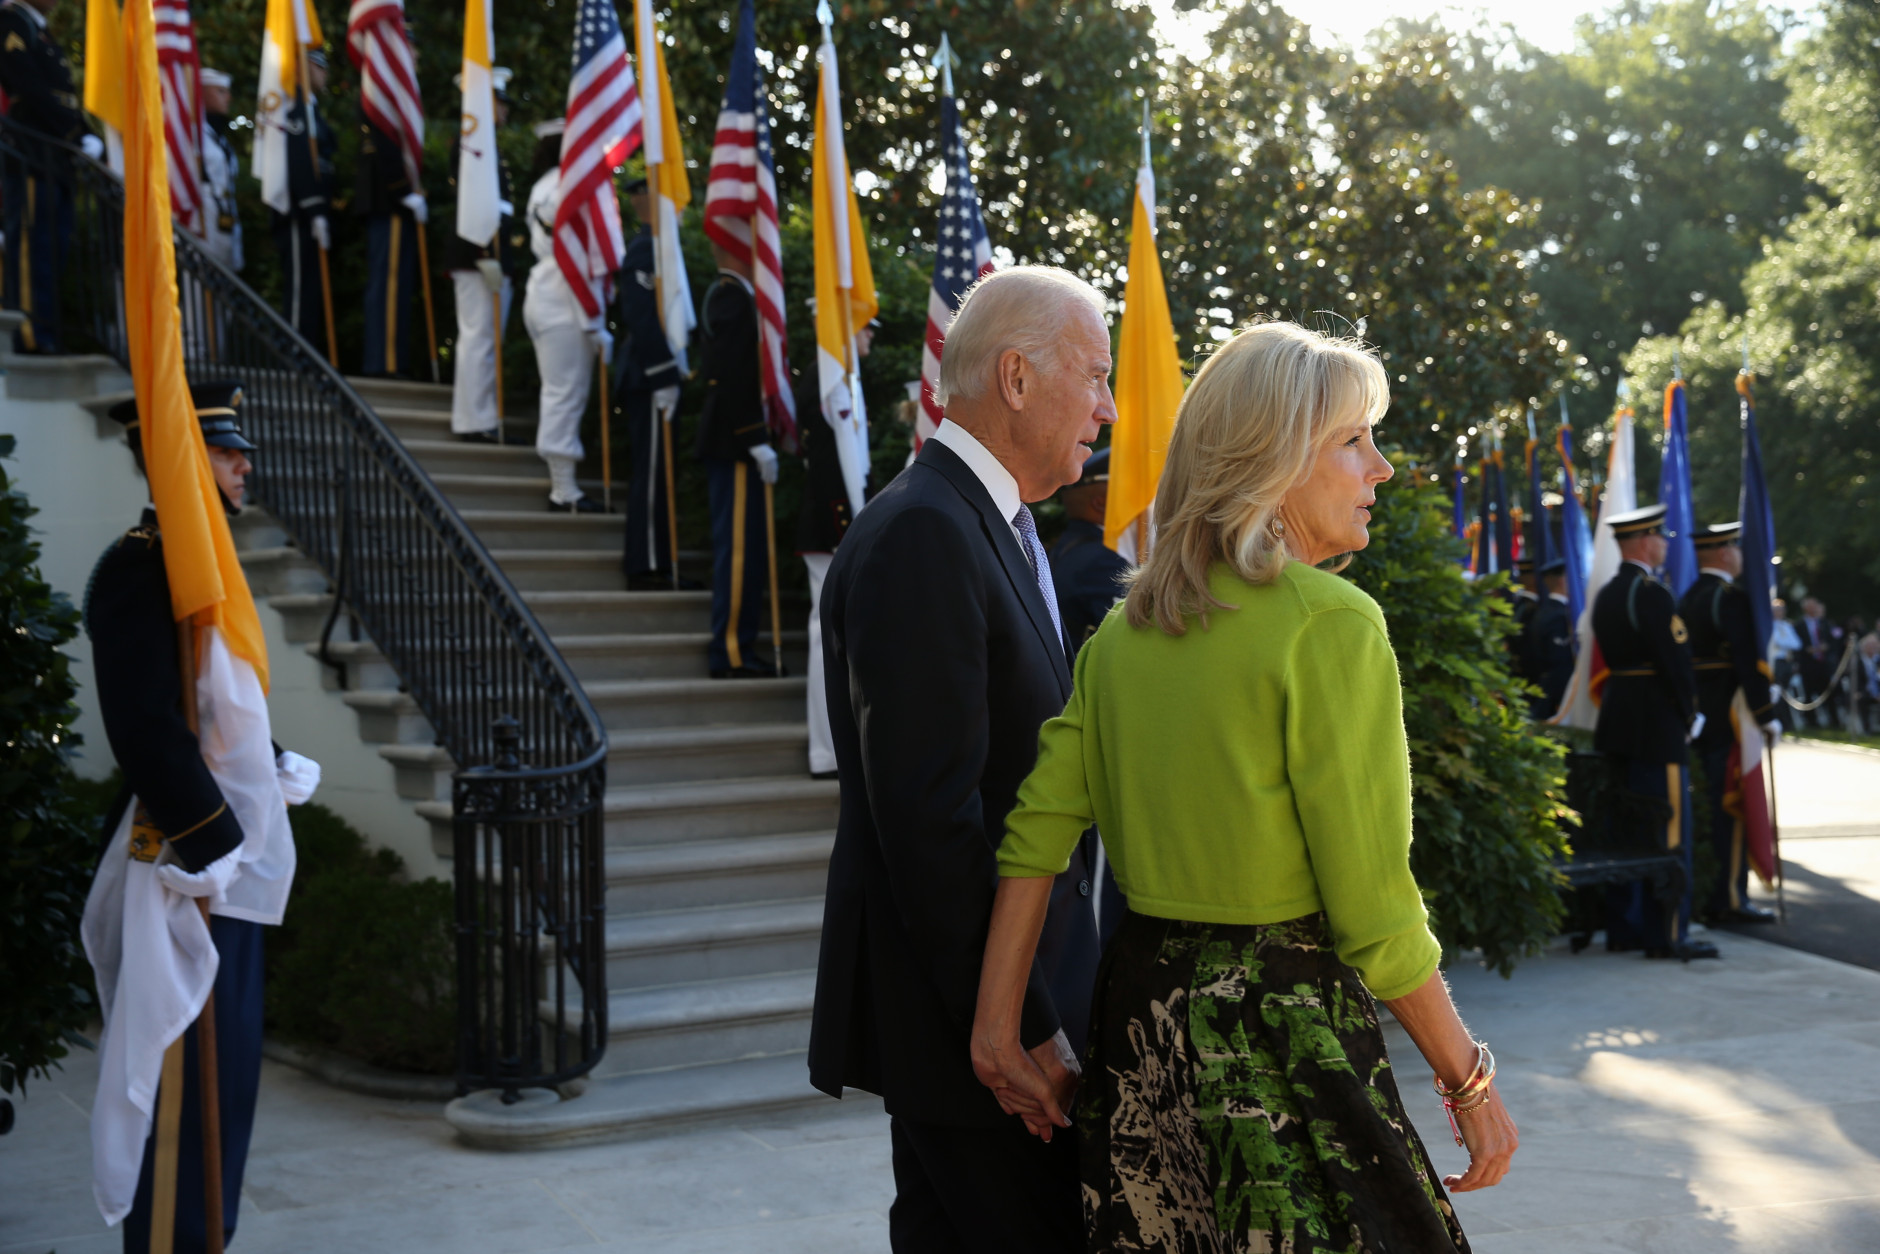 Vice President Joe Biden and his wife Jill await the arrival of Pope Francis, Wednesday Sept. 23, 2015, on the South Lawn of the White House in Washington. (AP Photo/Andrew Harnik)